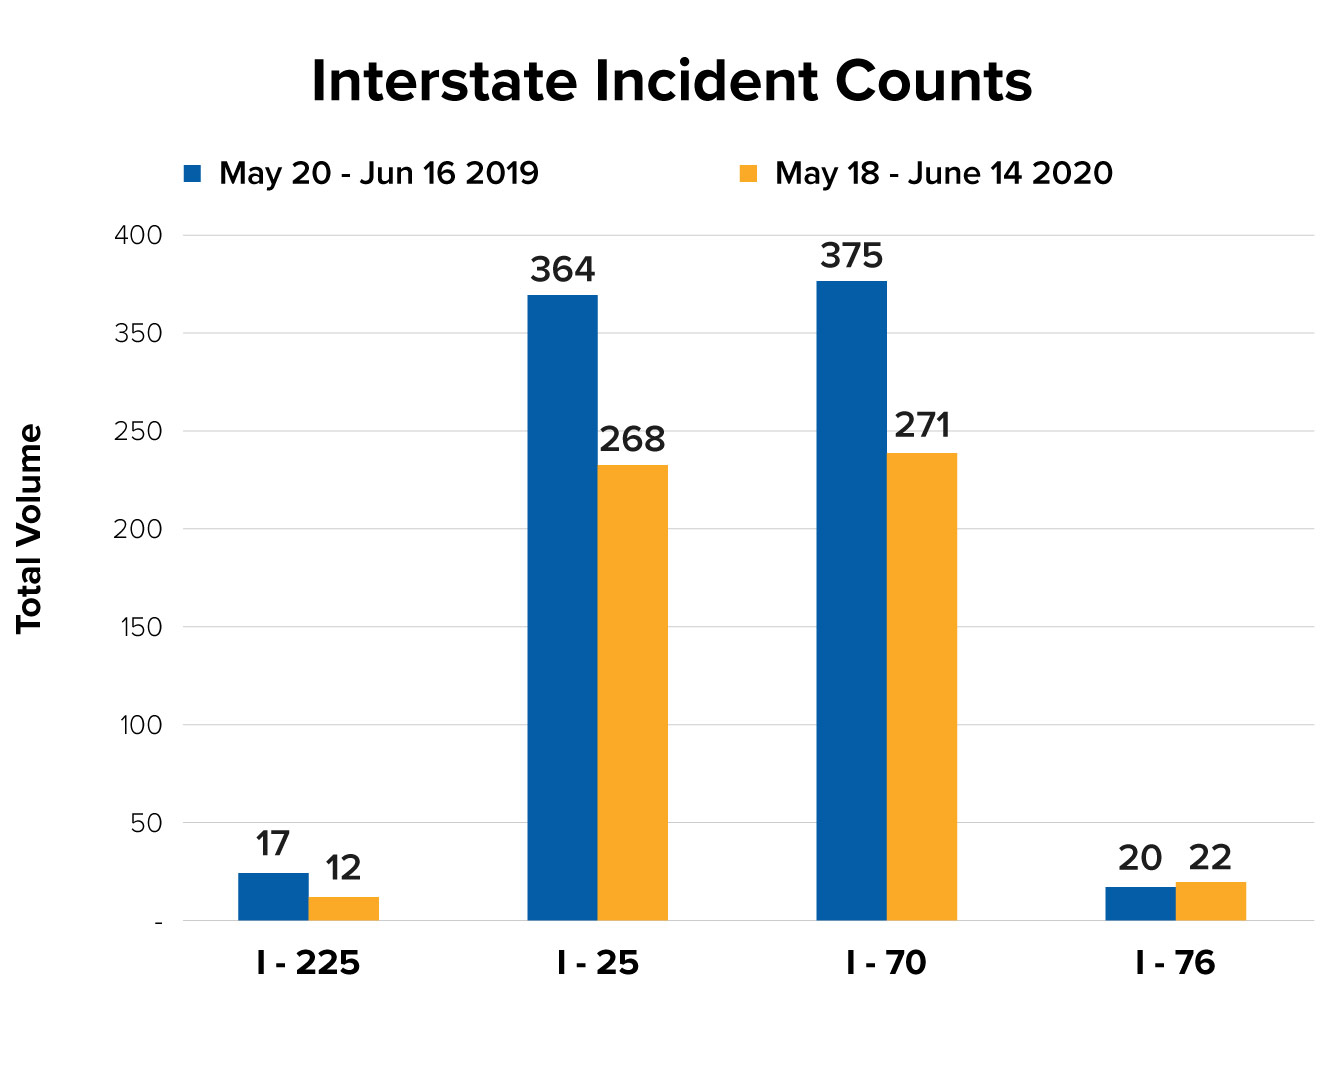 Interstate Incident Counts